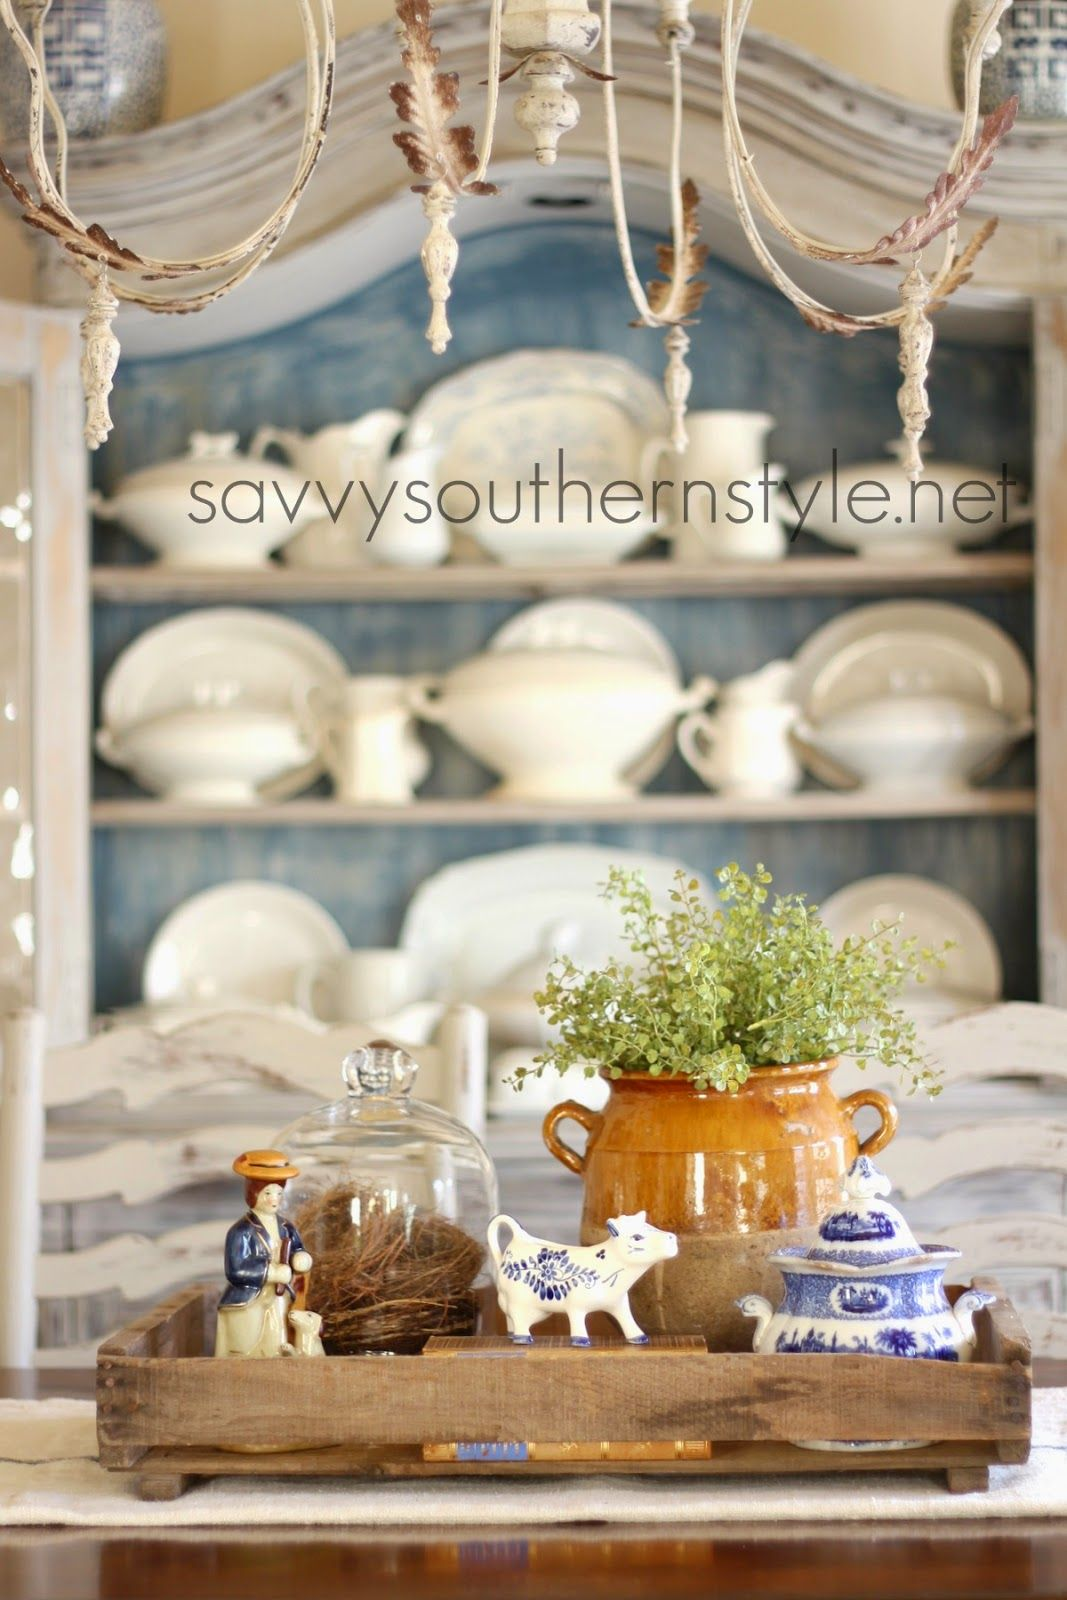 French Country Decor, Dining Room, Ironstone, Vintage Crate, Confit Pot,  Vignette